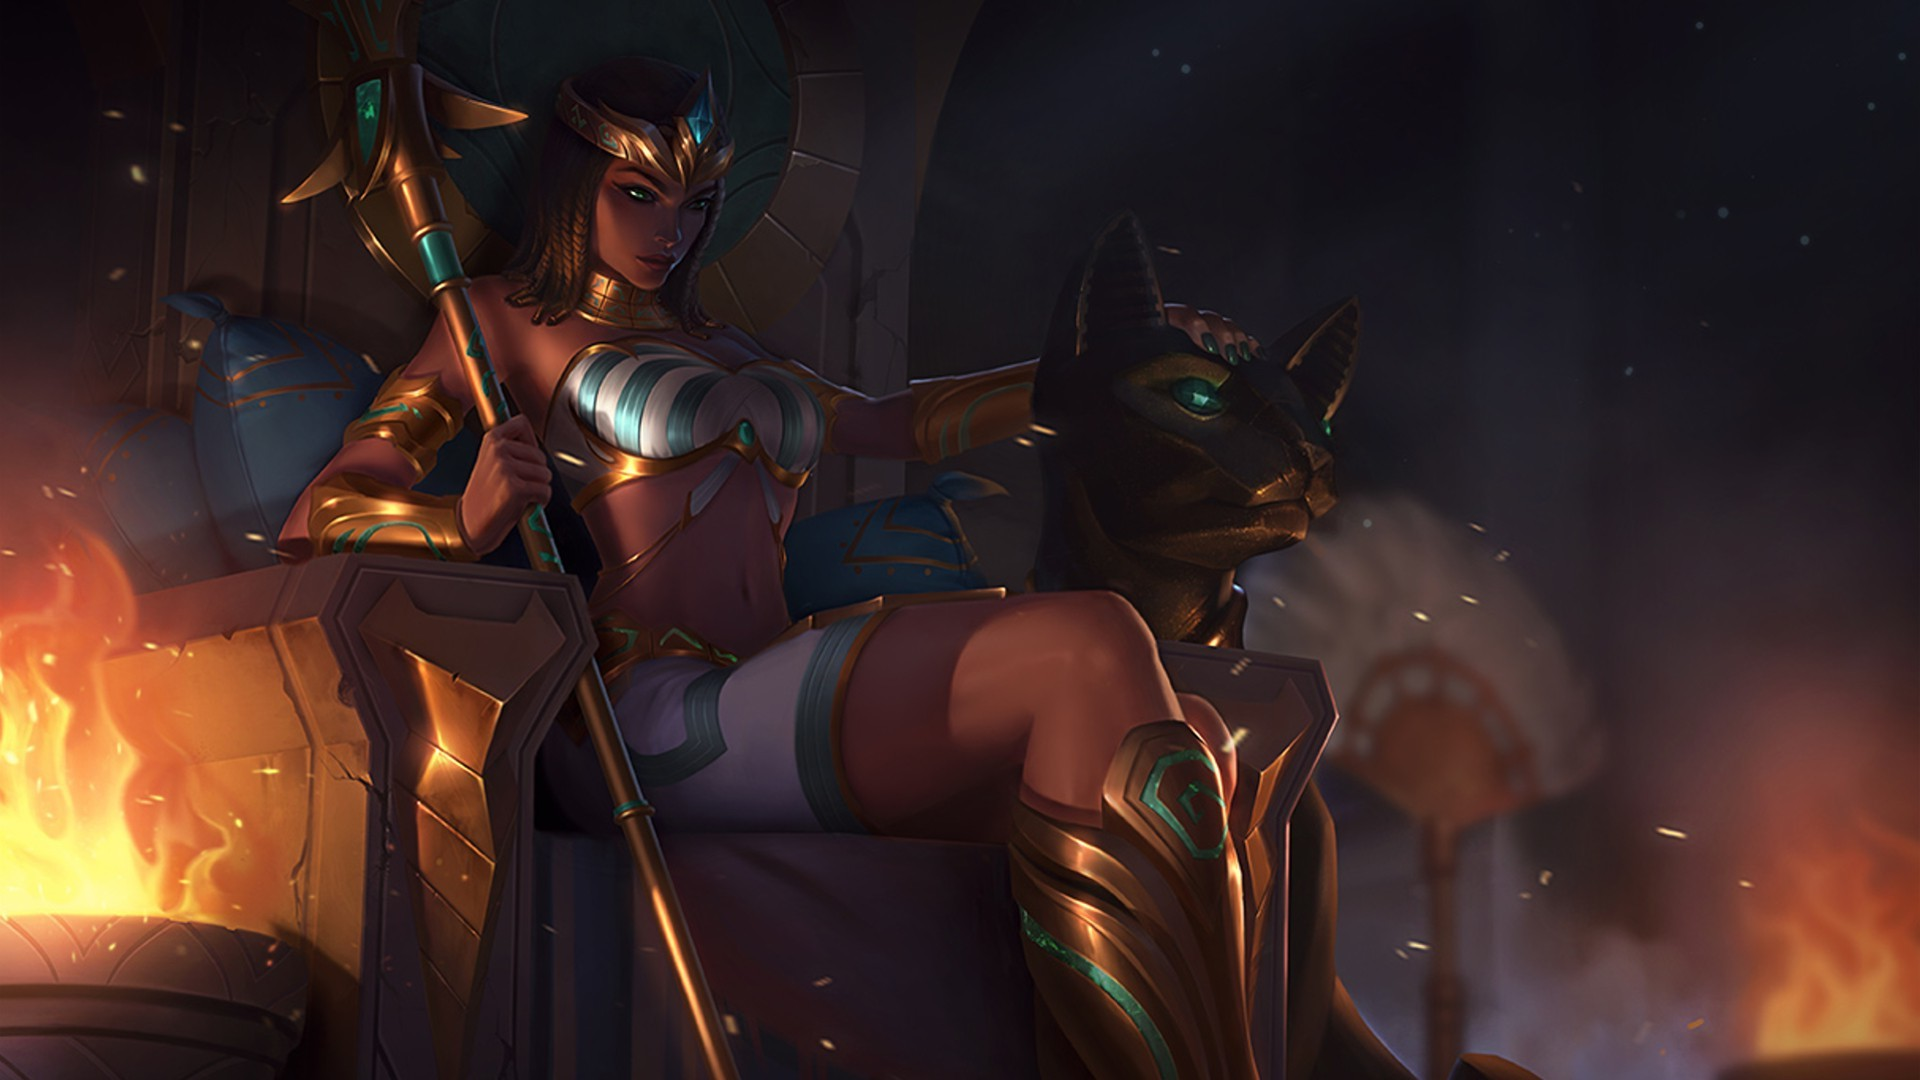 Cool Girls Overwatch Wallpapers Nidalee League Of Legends Pharaoh League Of Legends Cat